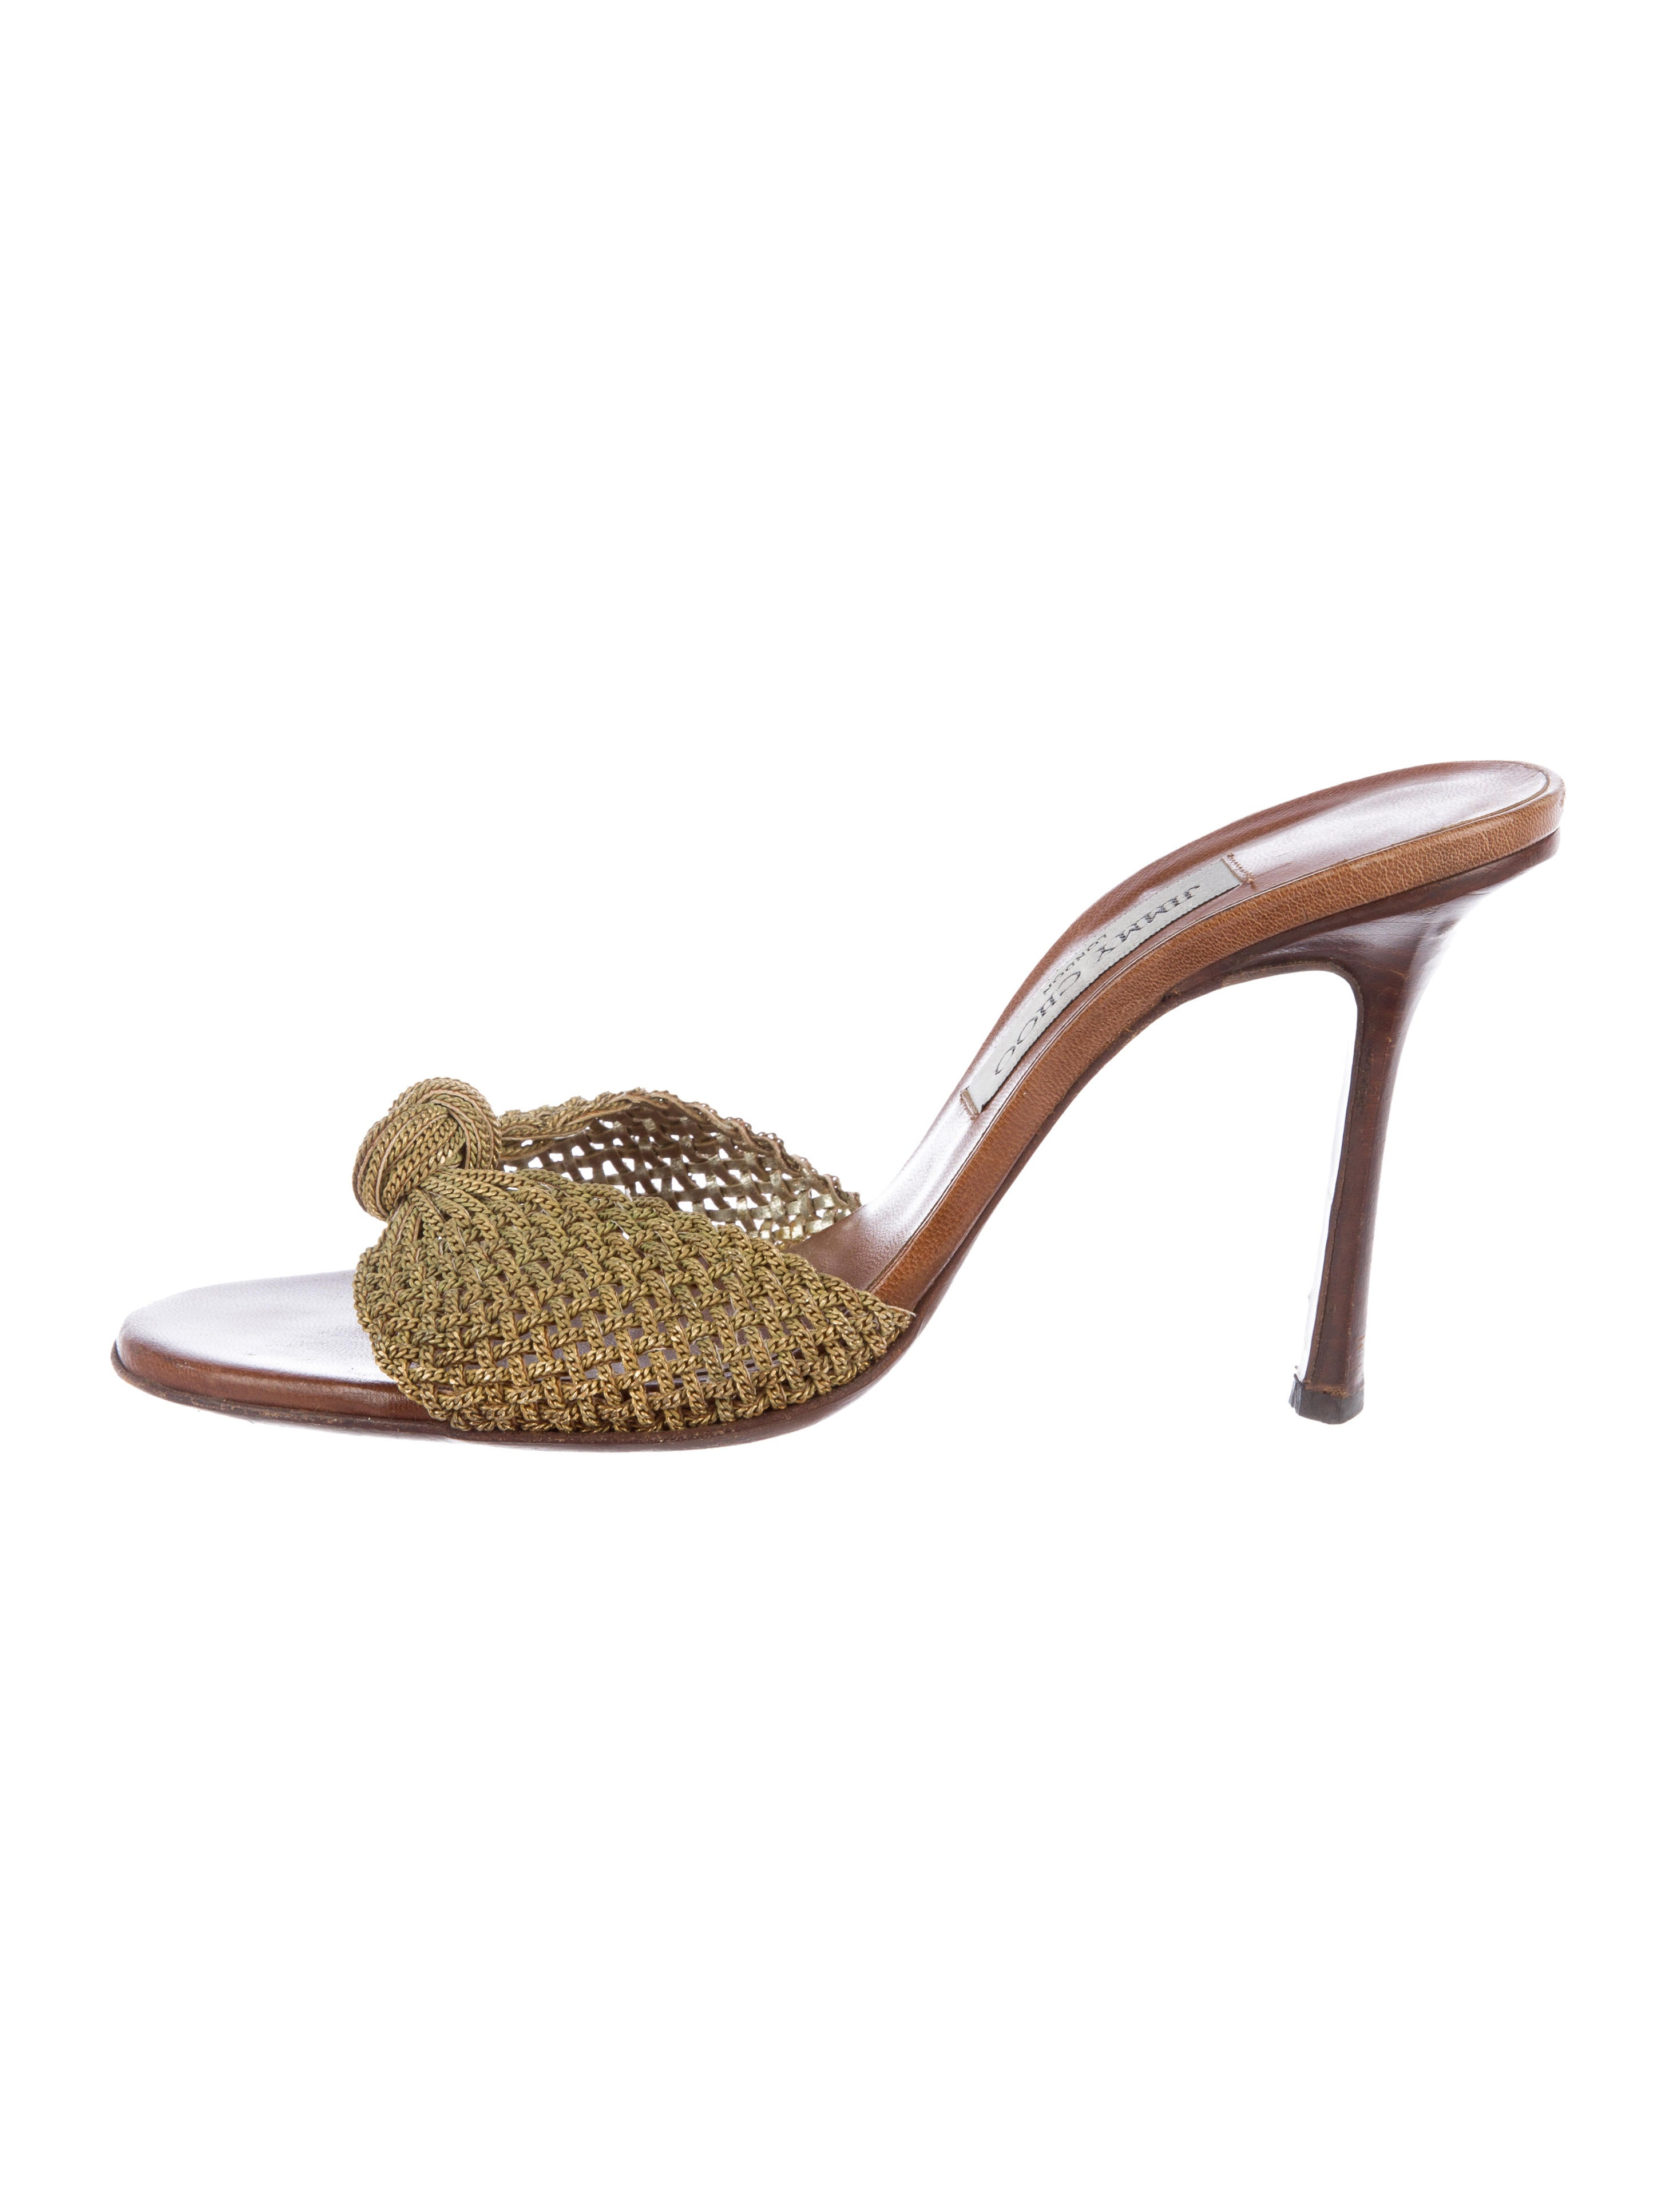 Jimmy Choo Chain-Link Knotted Sandals countdown package cheap price sale low price fee shipping QtM9cZ2Mm